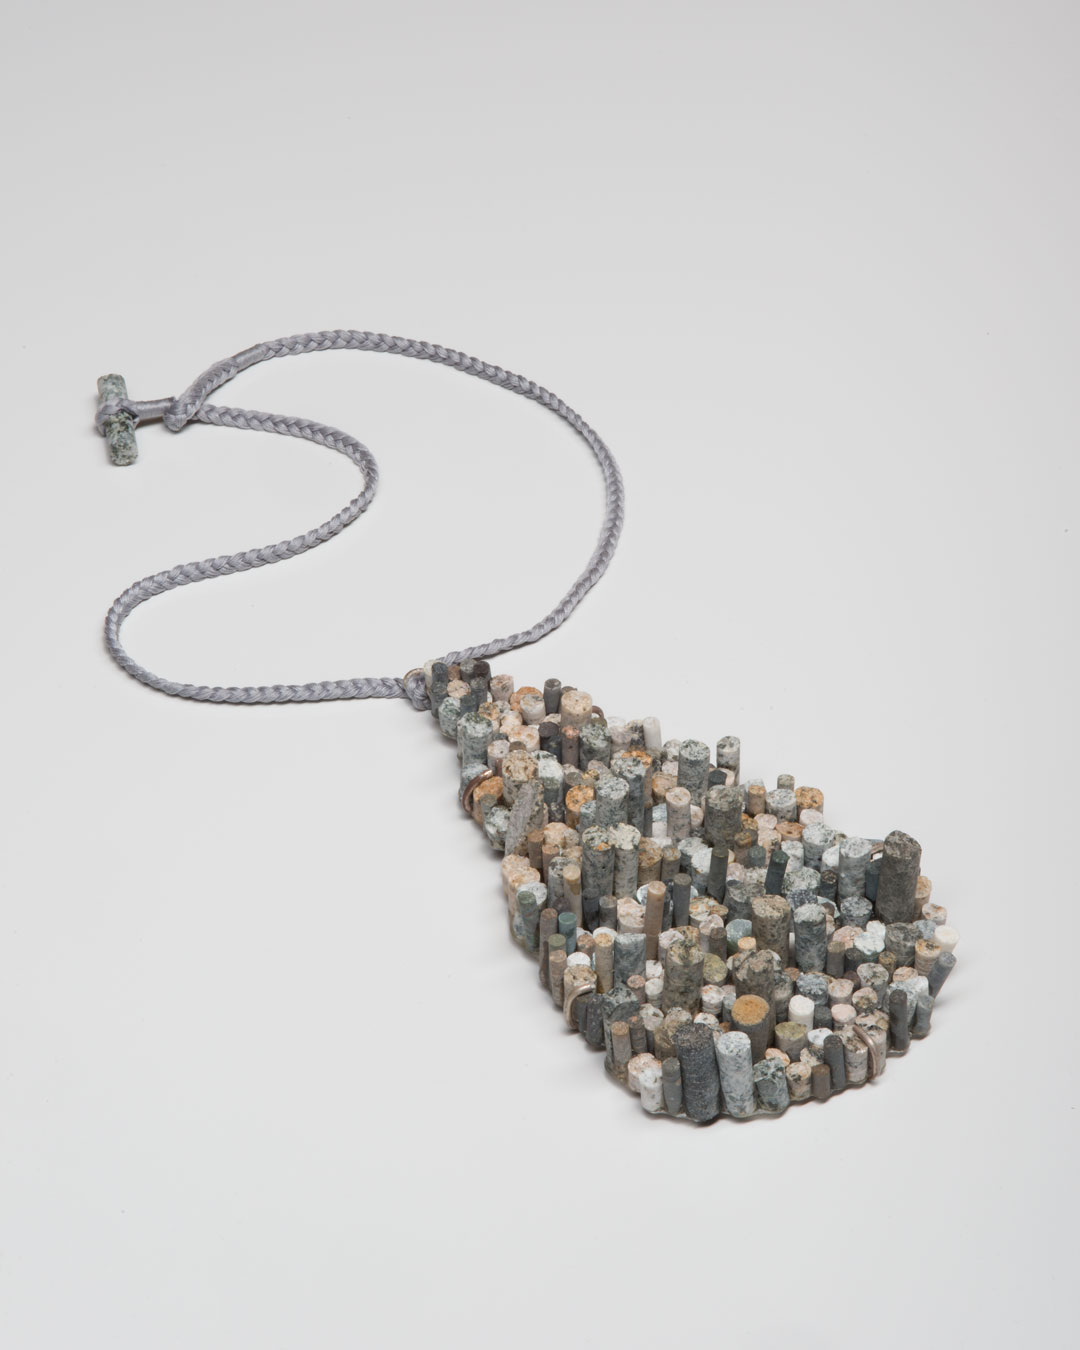 Lisa Walker, untitled, 2020, pendant; various stones, silver, cord, €5350